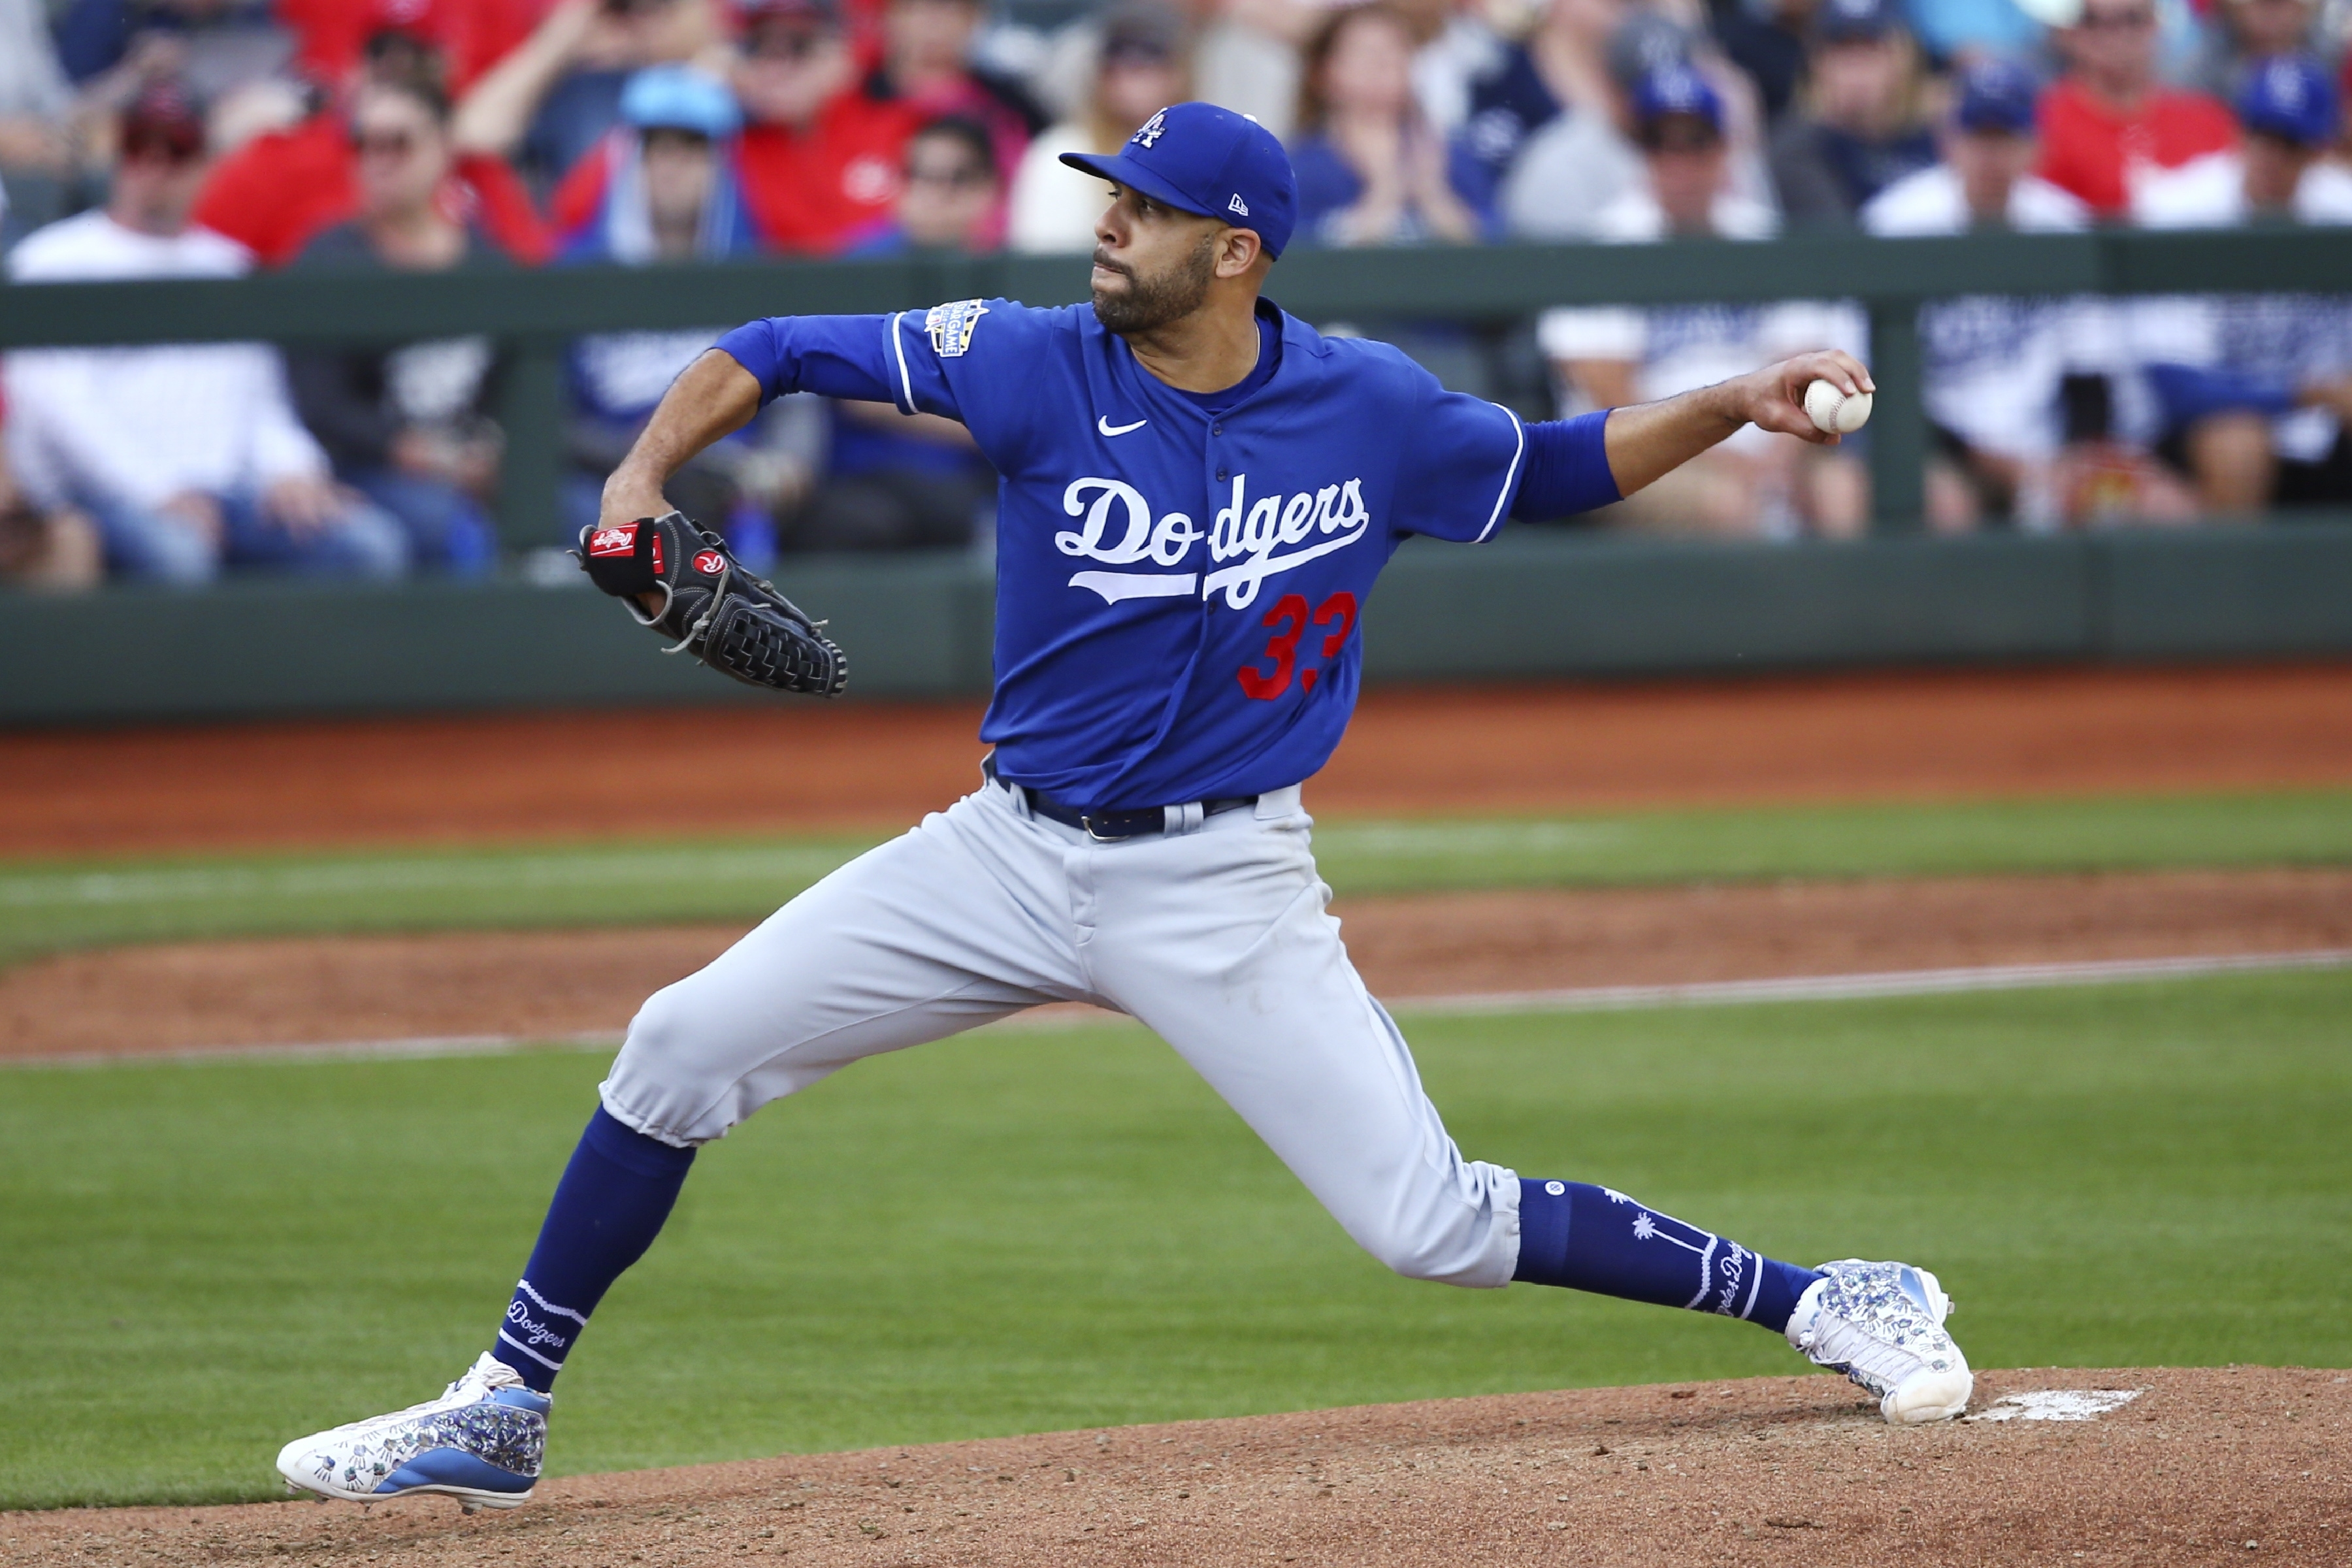 David Price, ex Boston Red Sox starter, helping Dodgers from afar after  opting out of season: 'It's kind of a way to feel a part of the team'  (report) - masslive.com